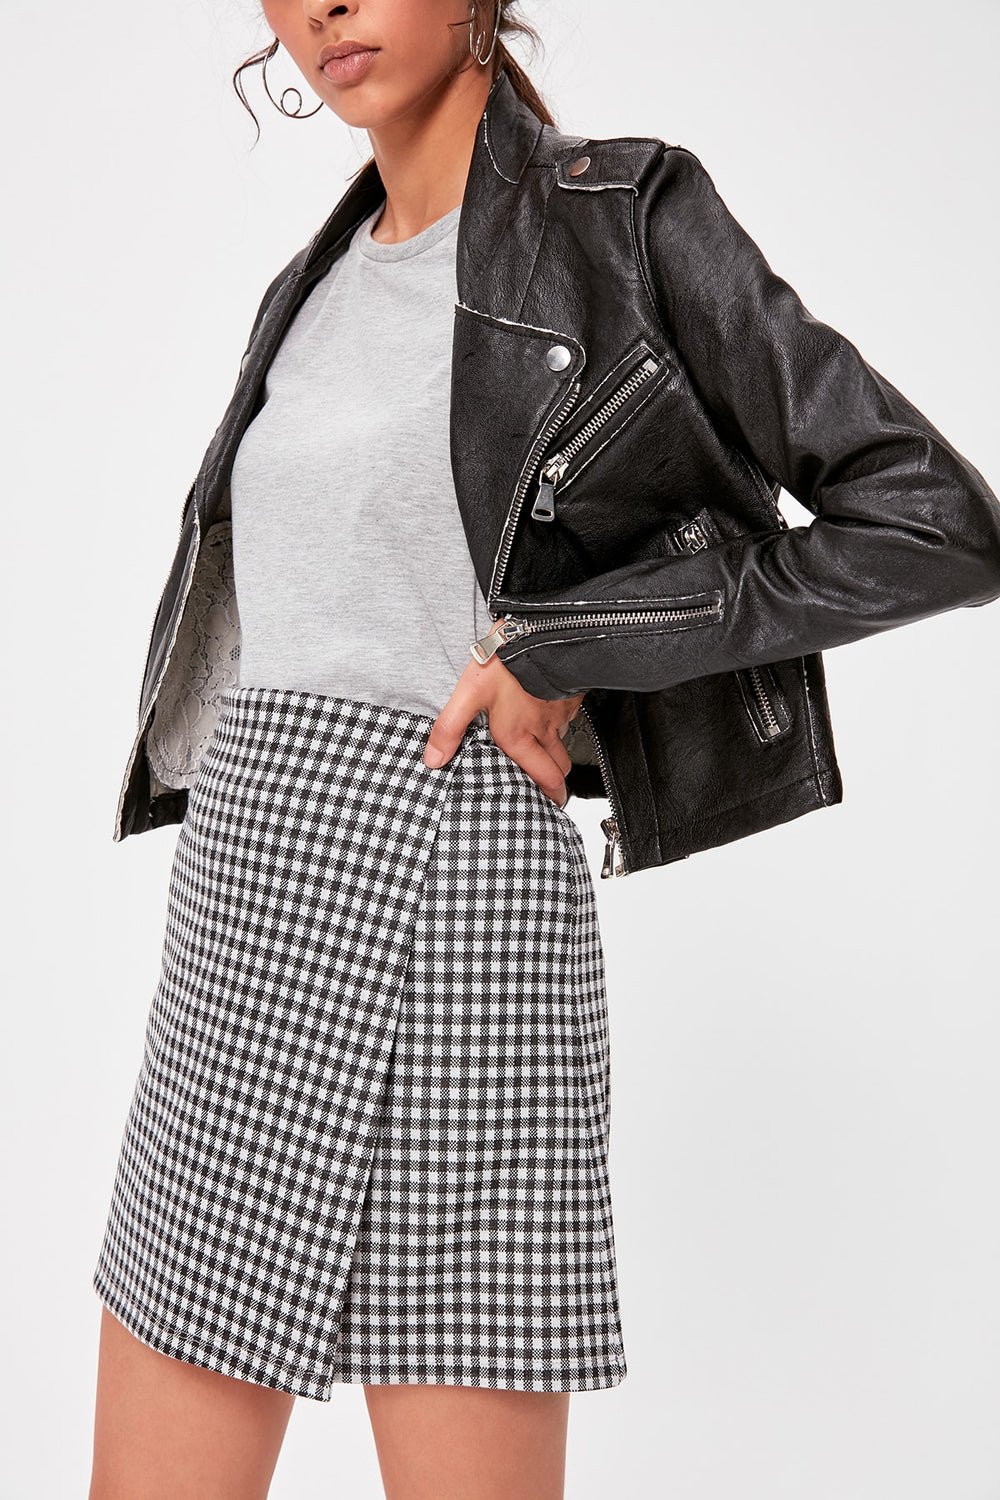 Black Gingham Knitted Skirt - Top Maxy